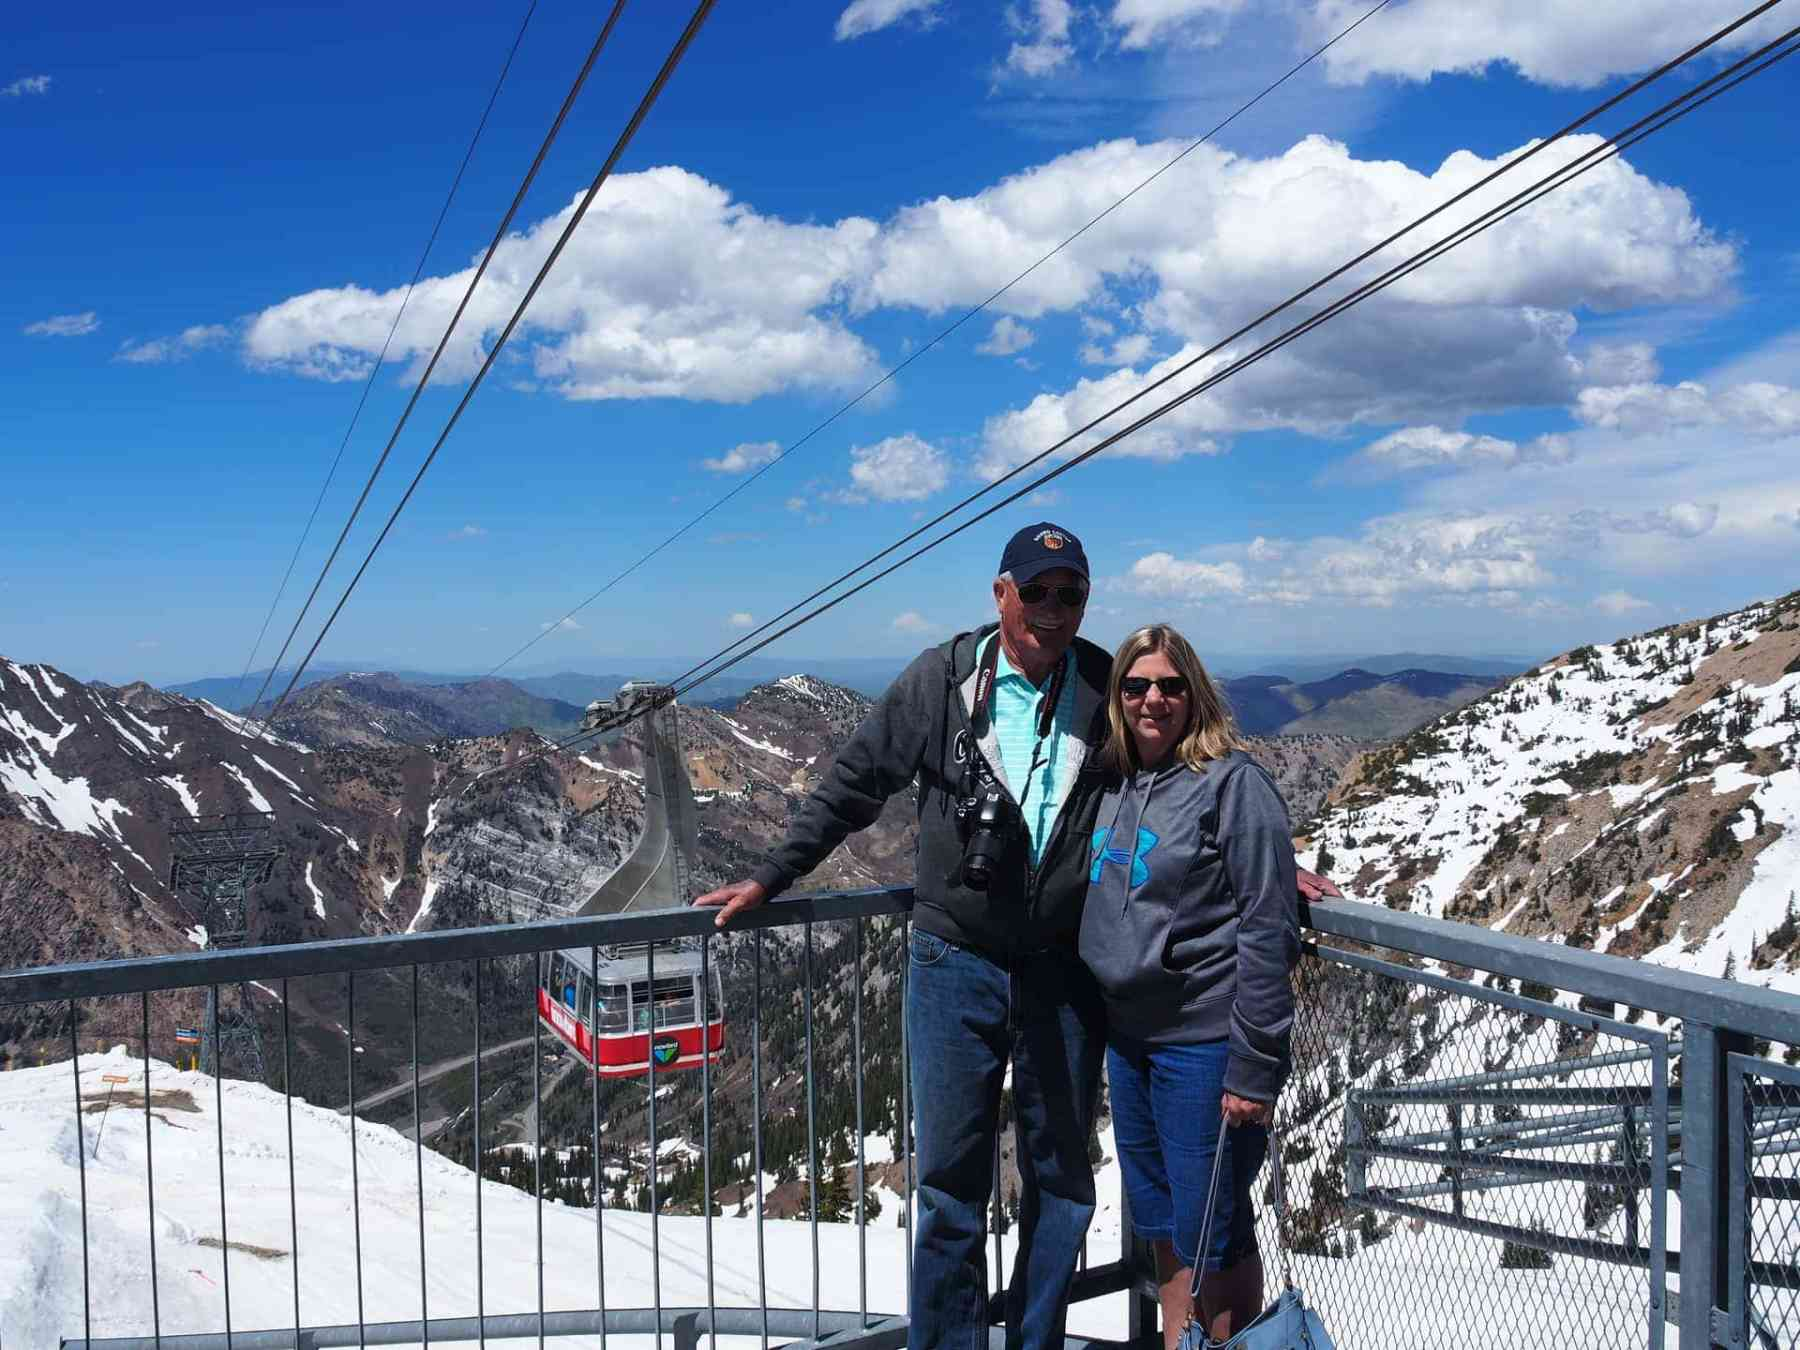 Be sure to ride the tram at Snowbird!